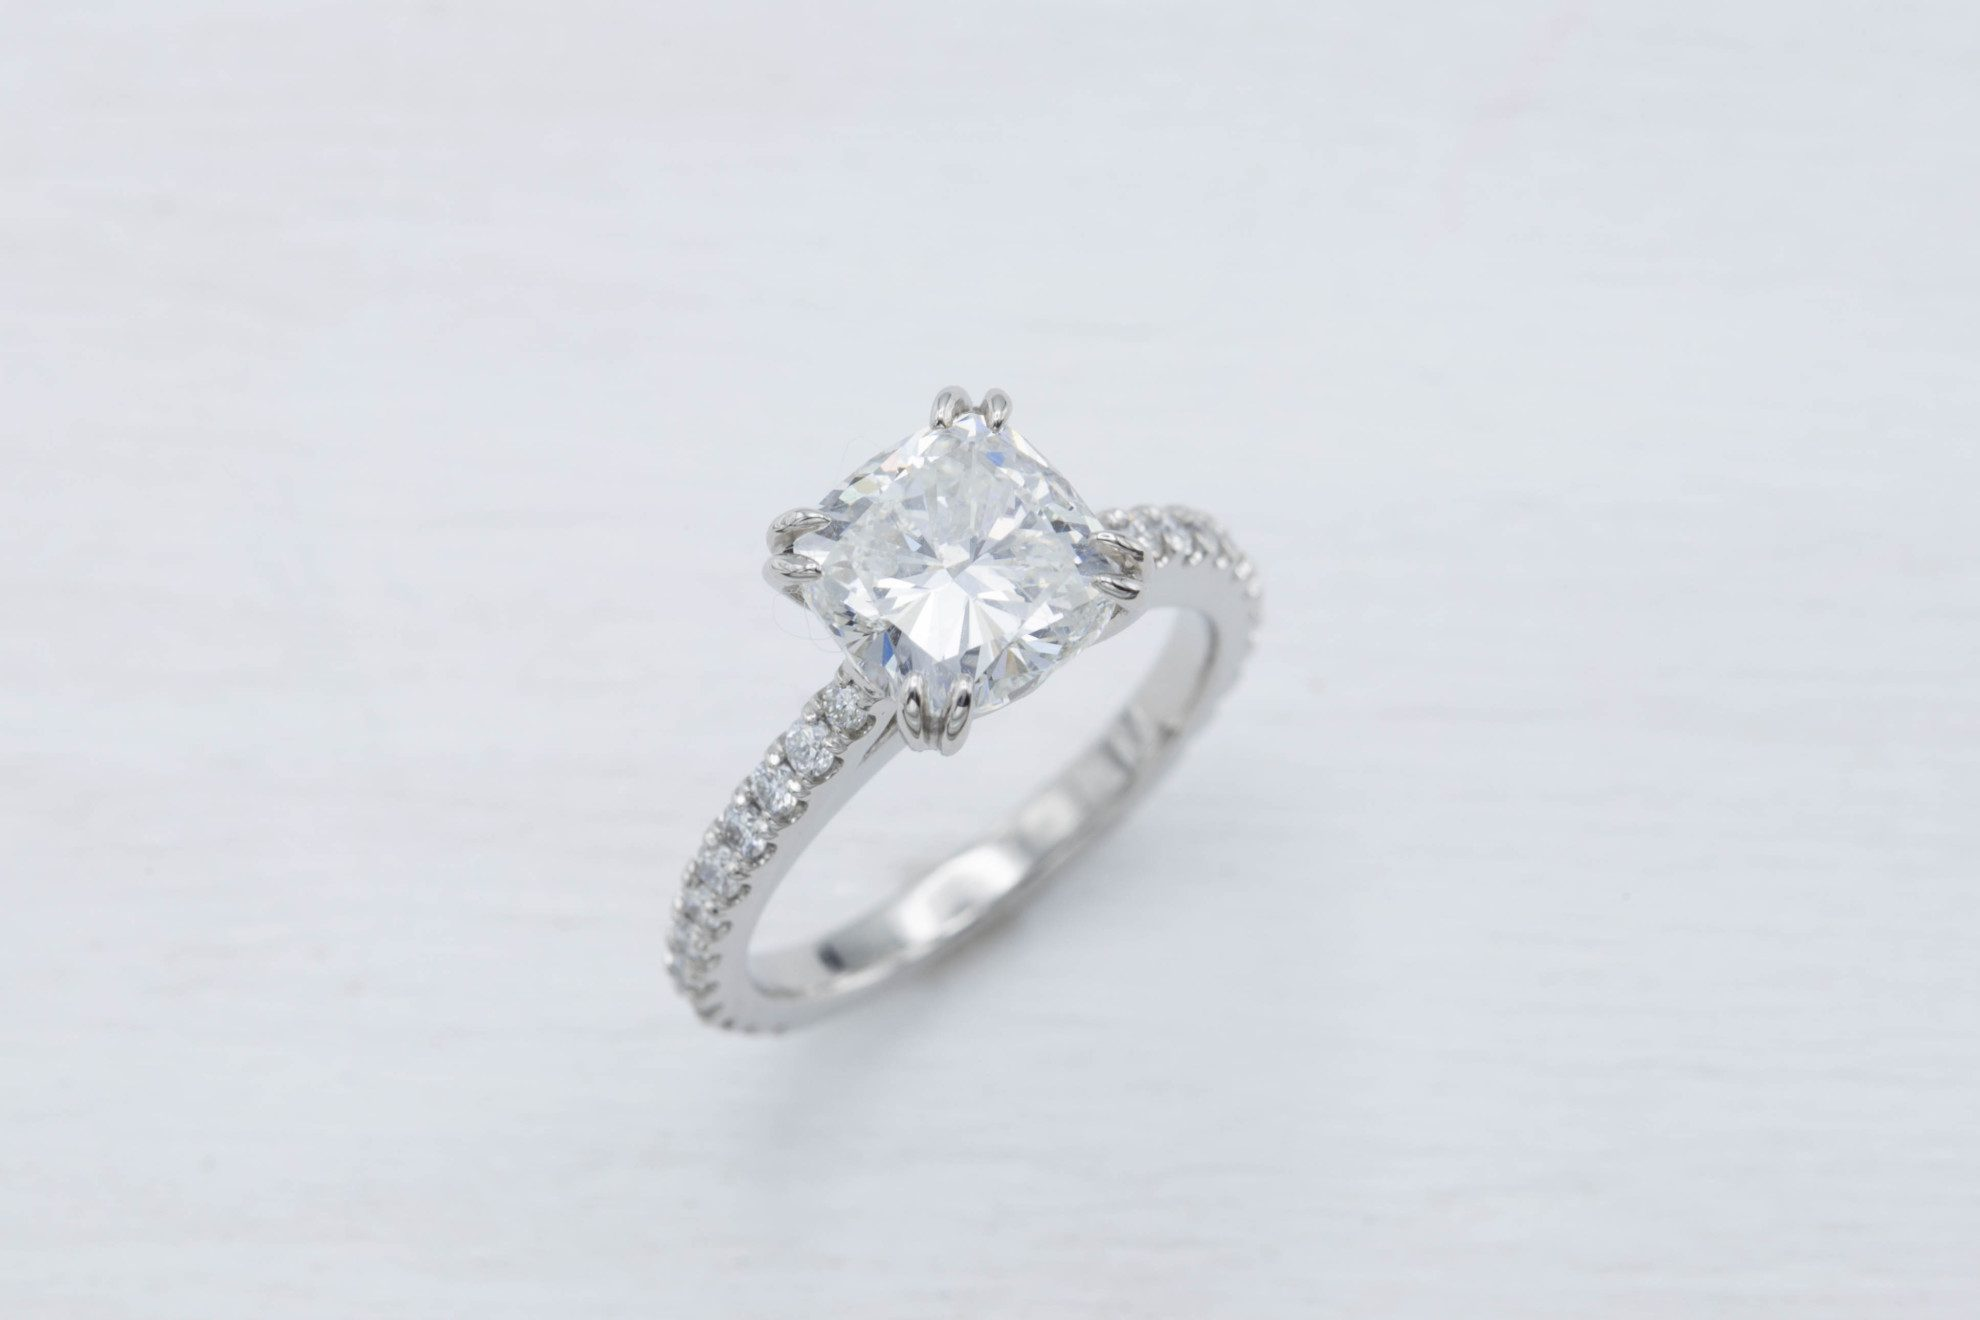 cushion-cut diamonds - 2.1 carat cushion engagement ring